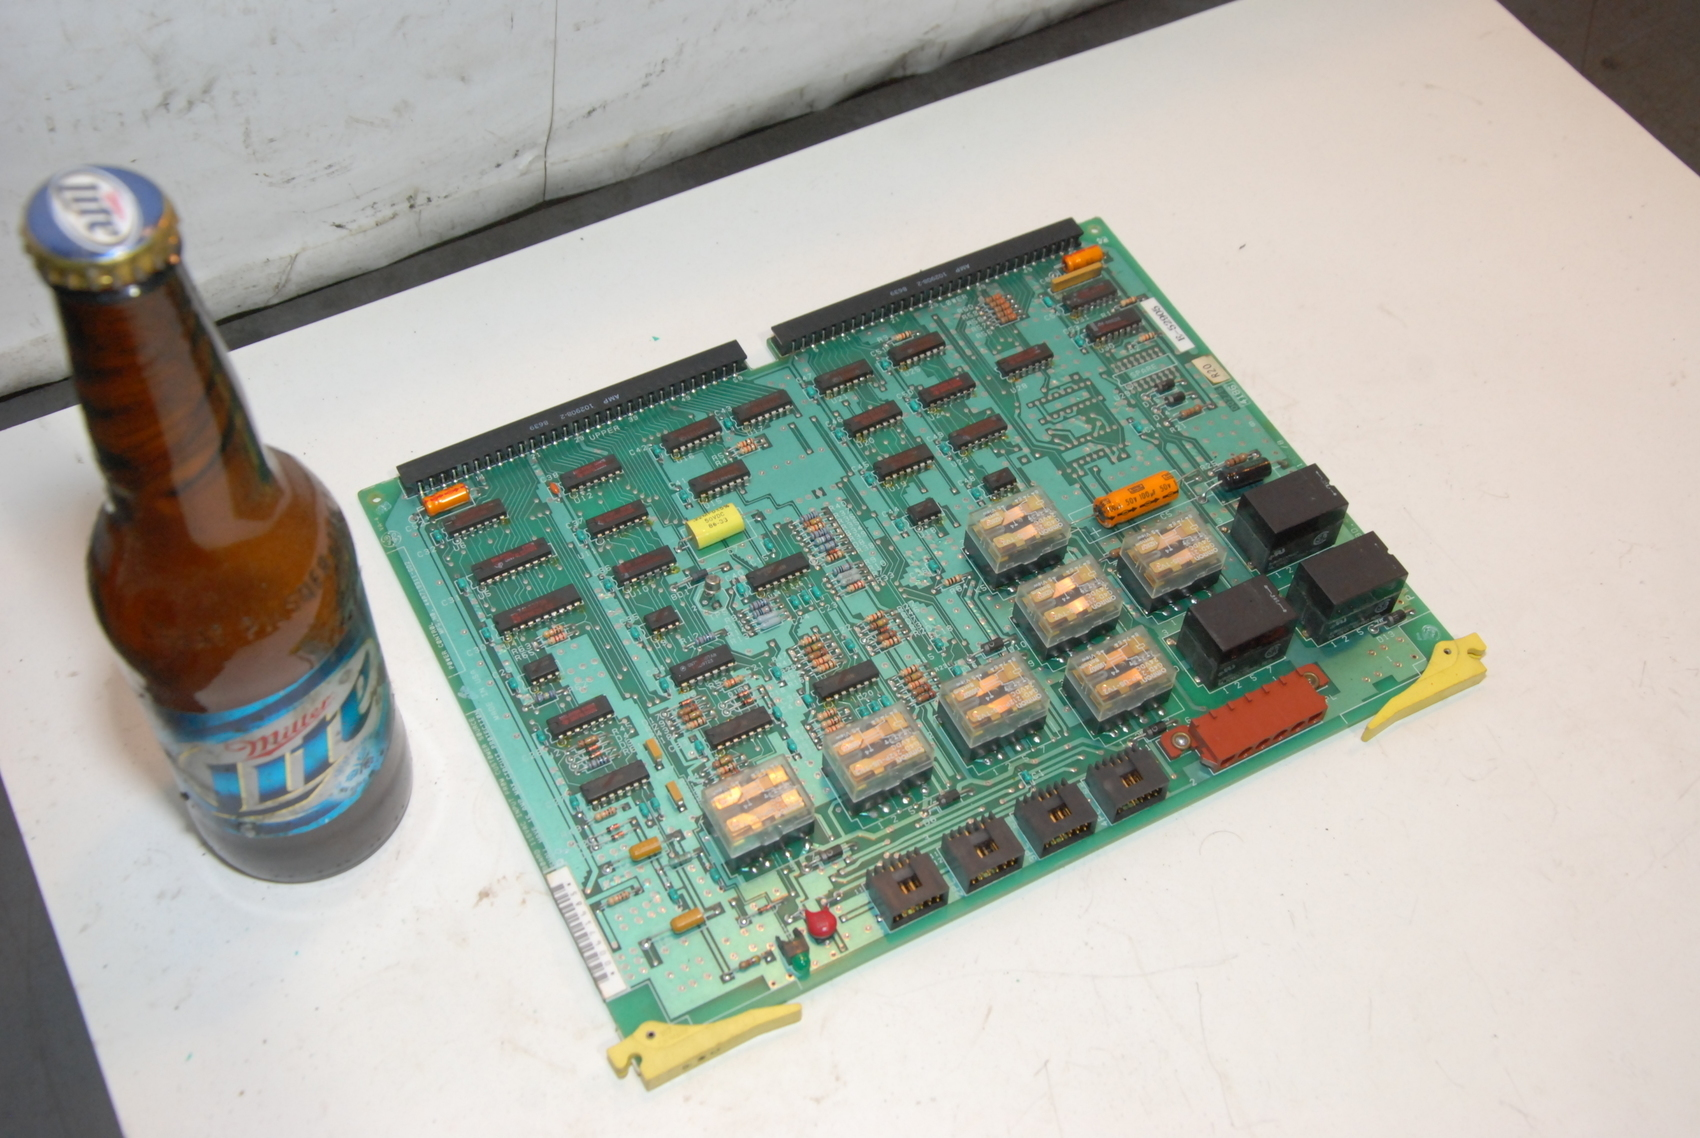 General Electric 44A717653-001R05/8 PC Power Supply Circuit Board